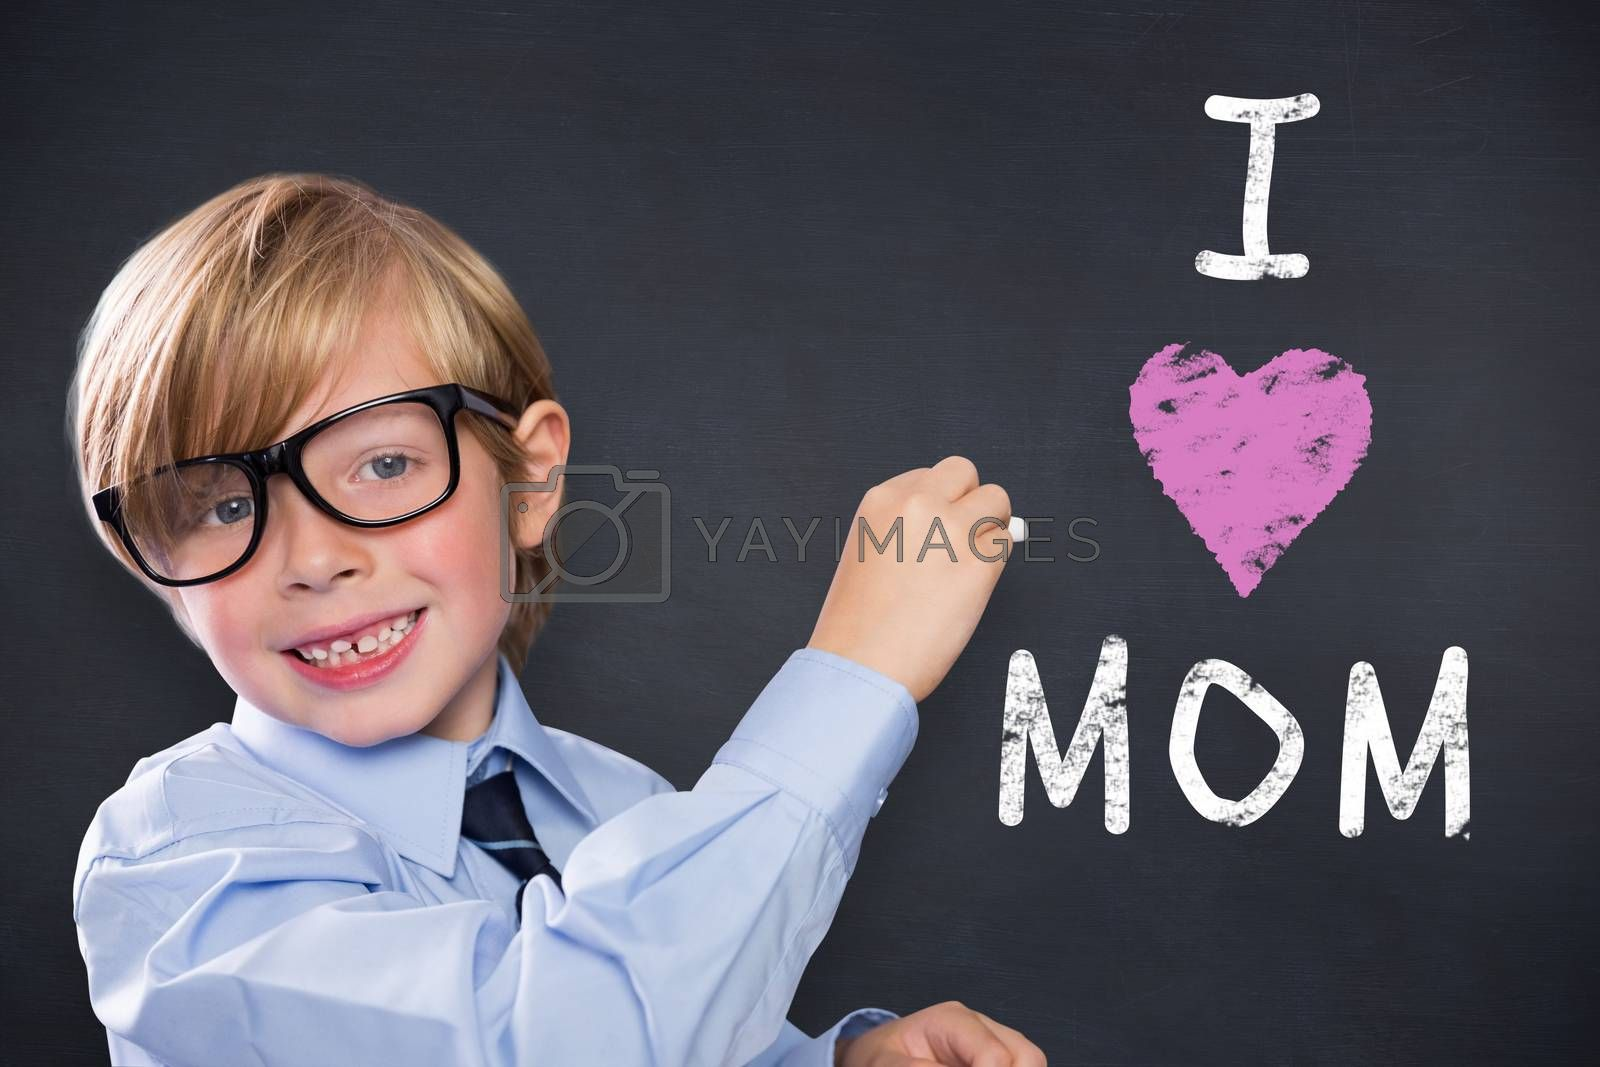 Cute pupil writing against black background